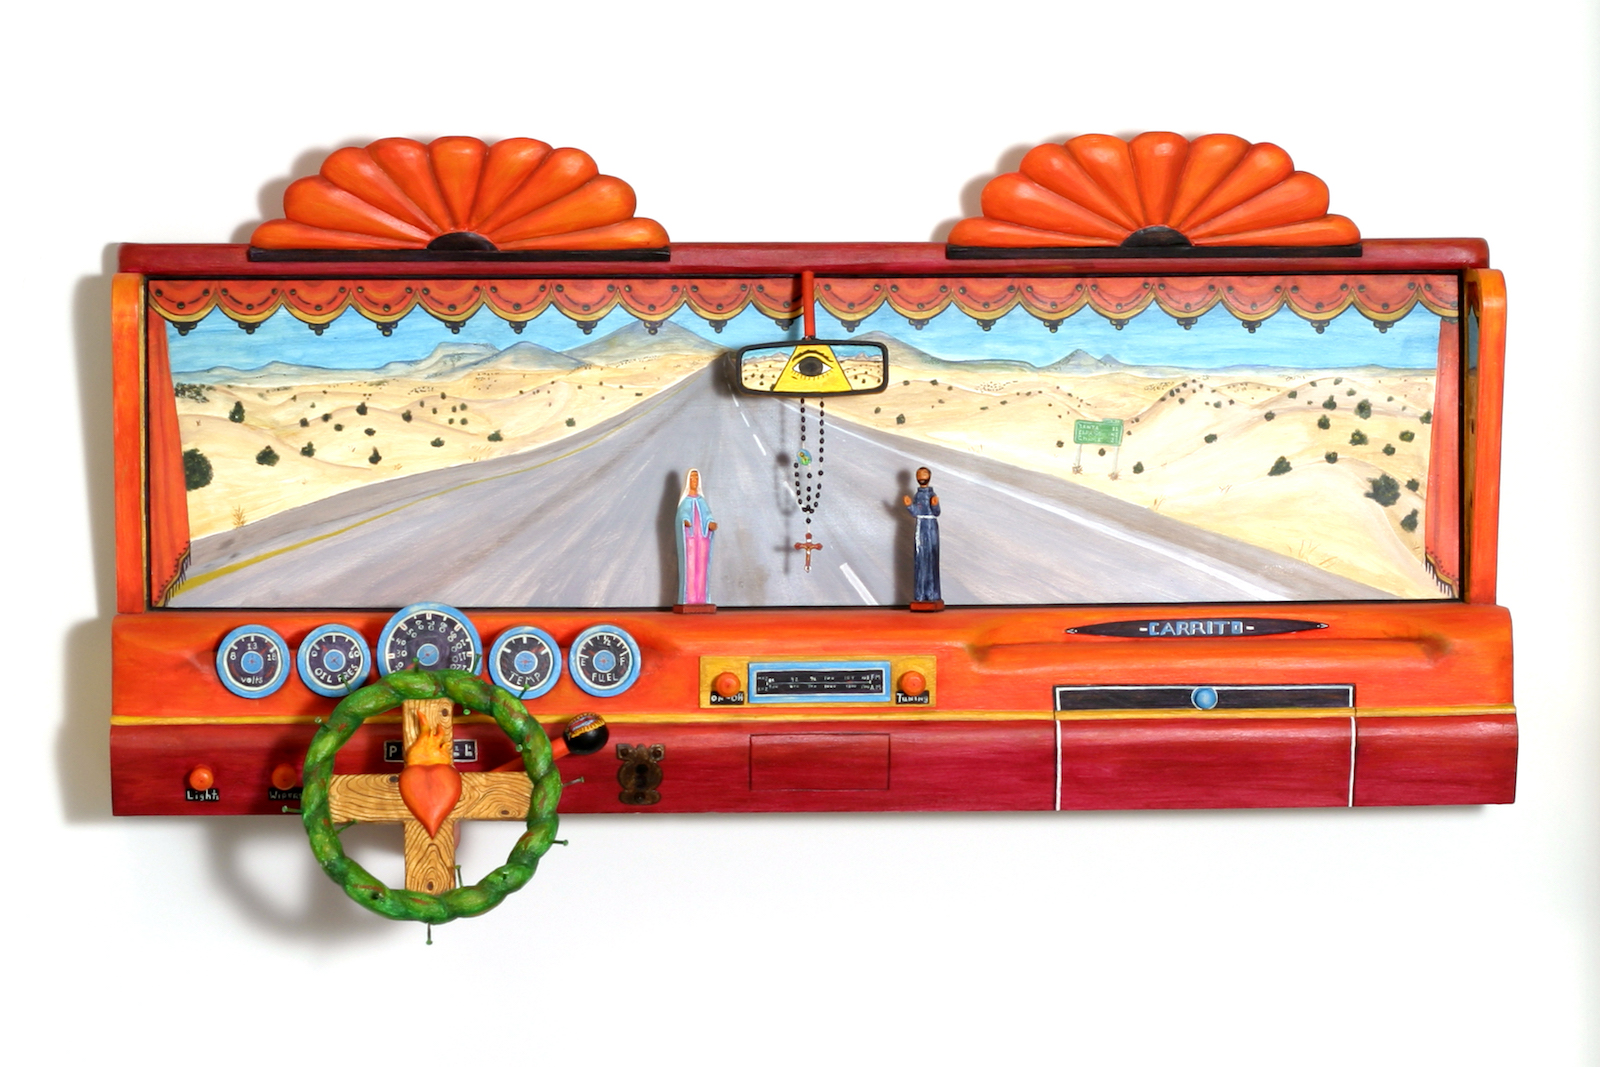 Luis Tapia born 1950 Santa Fe, New Mexico; lives La Cienega, New Mexico Chima Altar – Ford III 1992 carved and painted wood with metal, glass beads, string, and nails 35 × 60 × 17 in. museum purchase, 1991 General Obligation Bonds and private donation PC1992.79.1